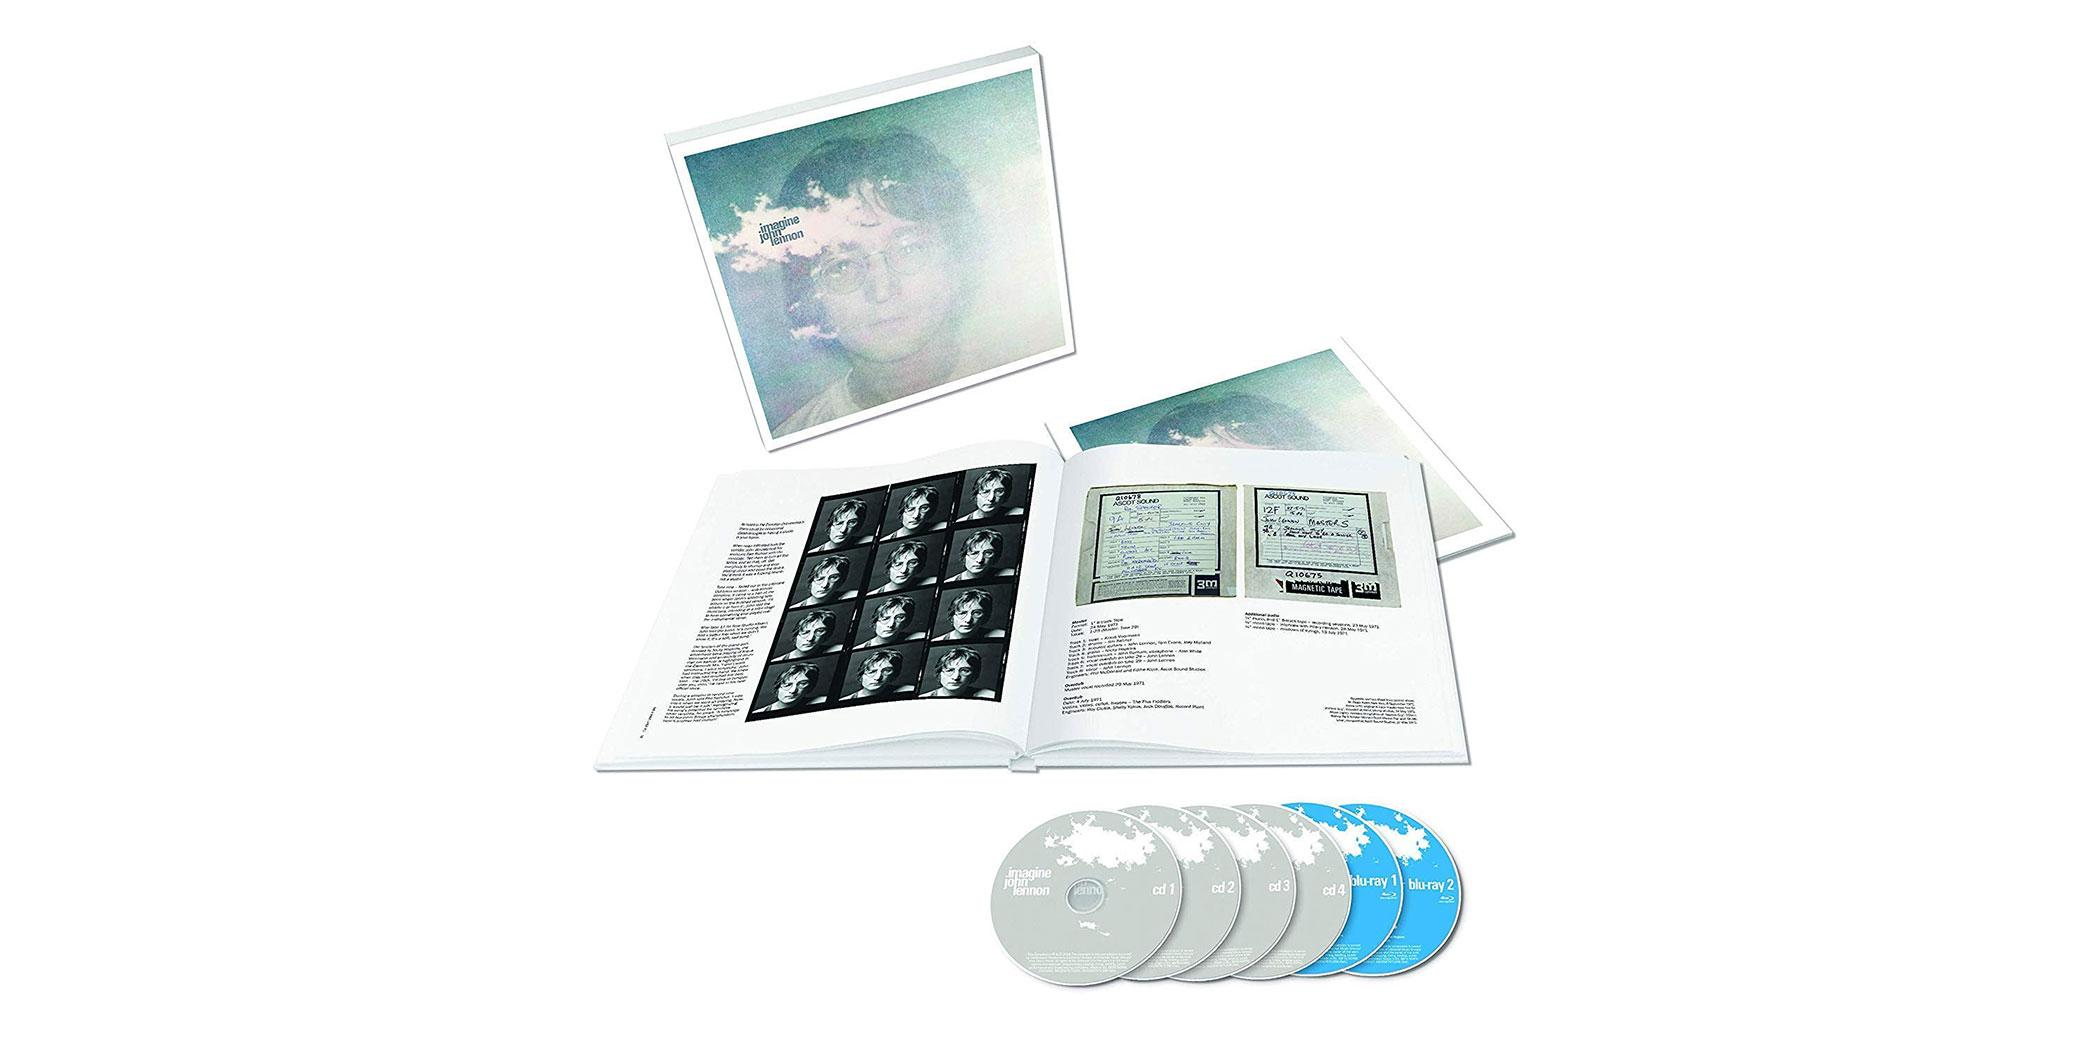 Imagine: The Ultimate Collection by John Lennon